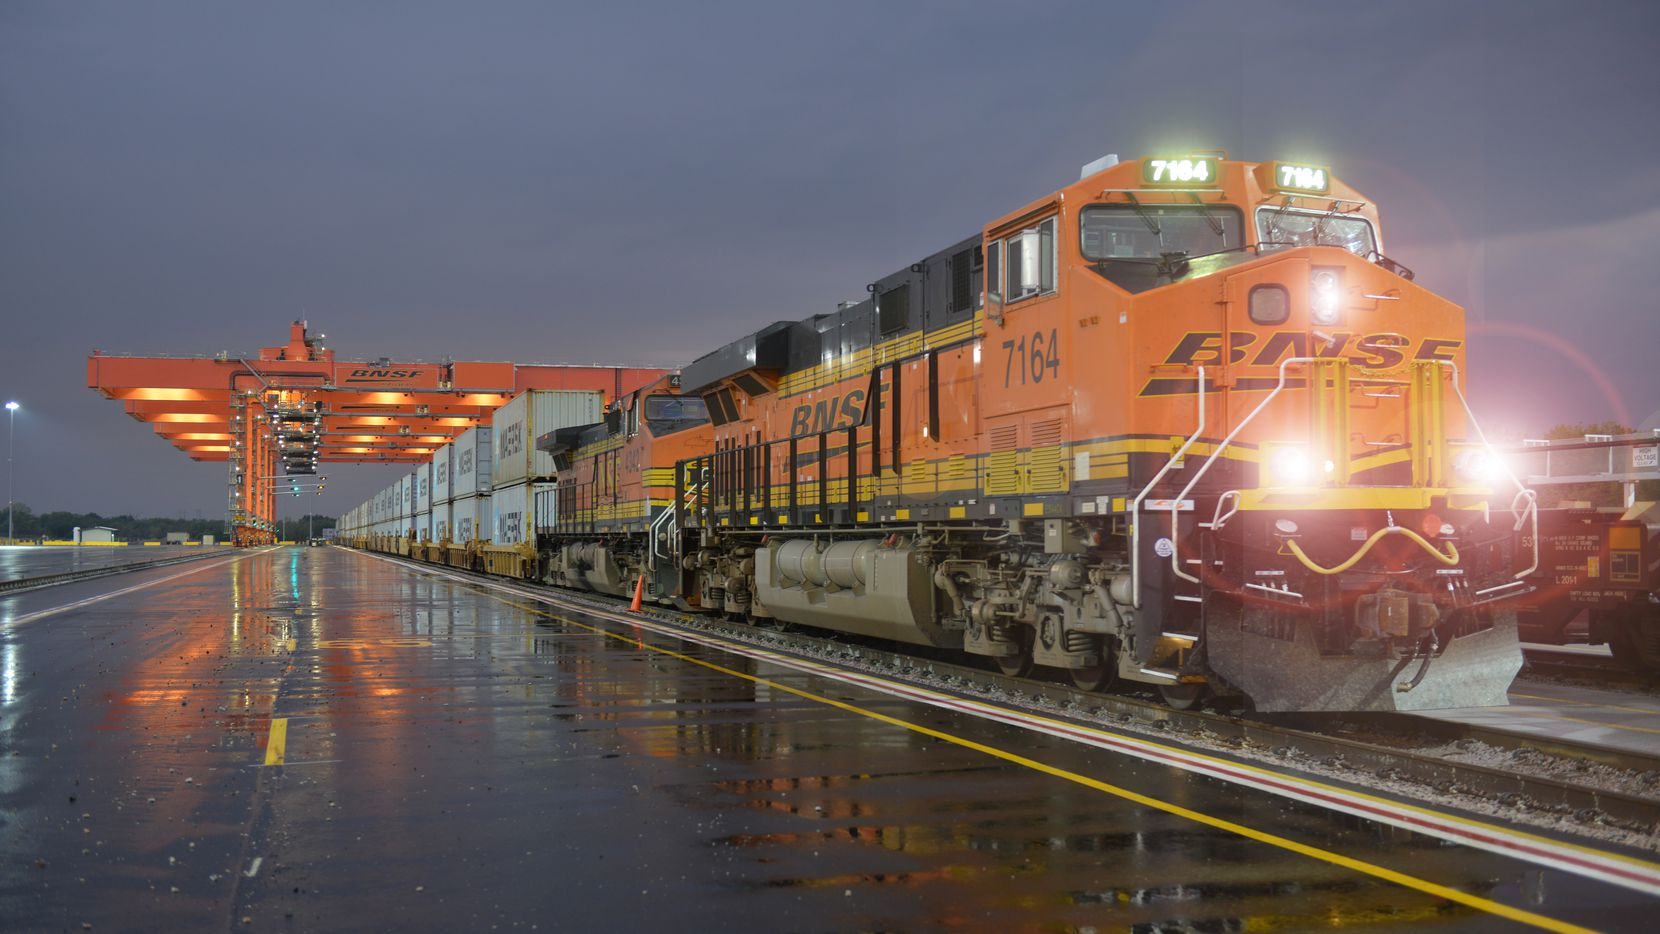 BNSF Railway employs more than 46,000 people, operating a 32,500-mile rail network in 28 states and three Canadian provinces. BNSF's corporate headquarters is in Fort Worth.